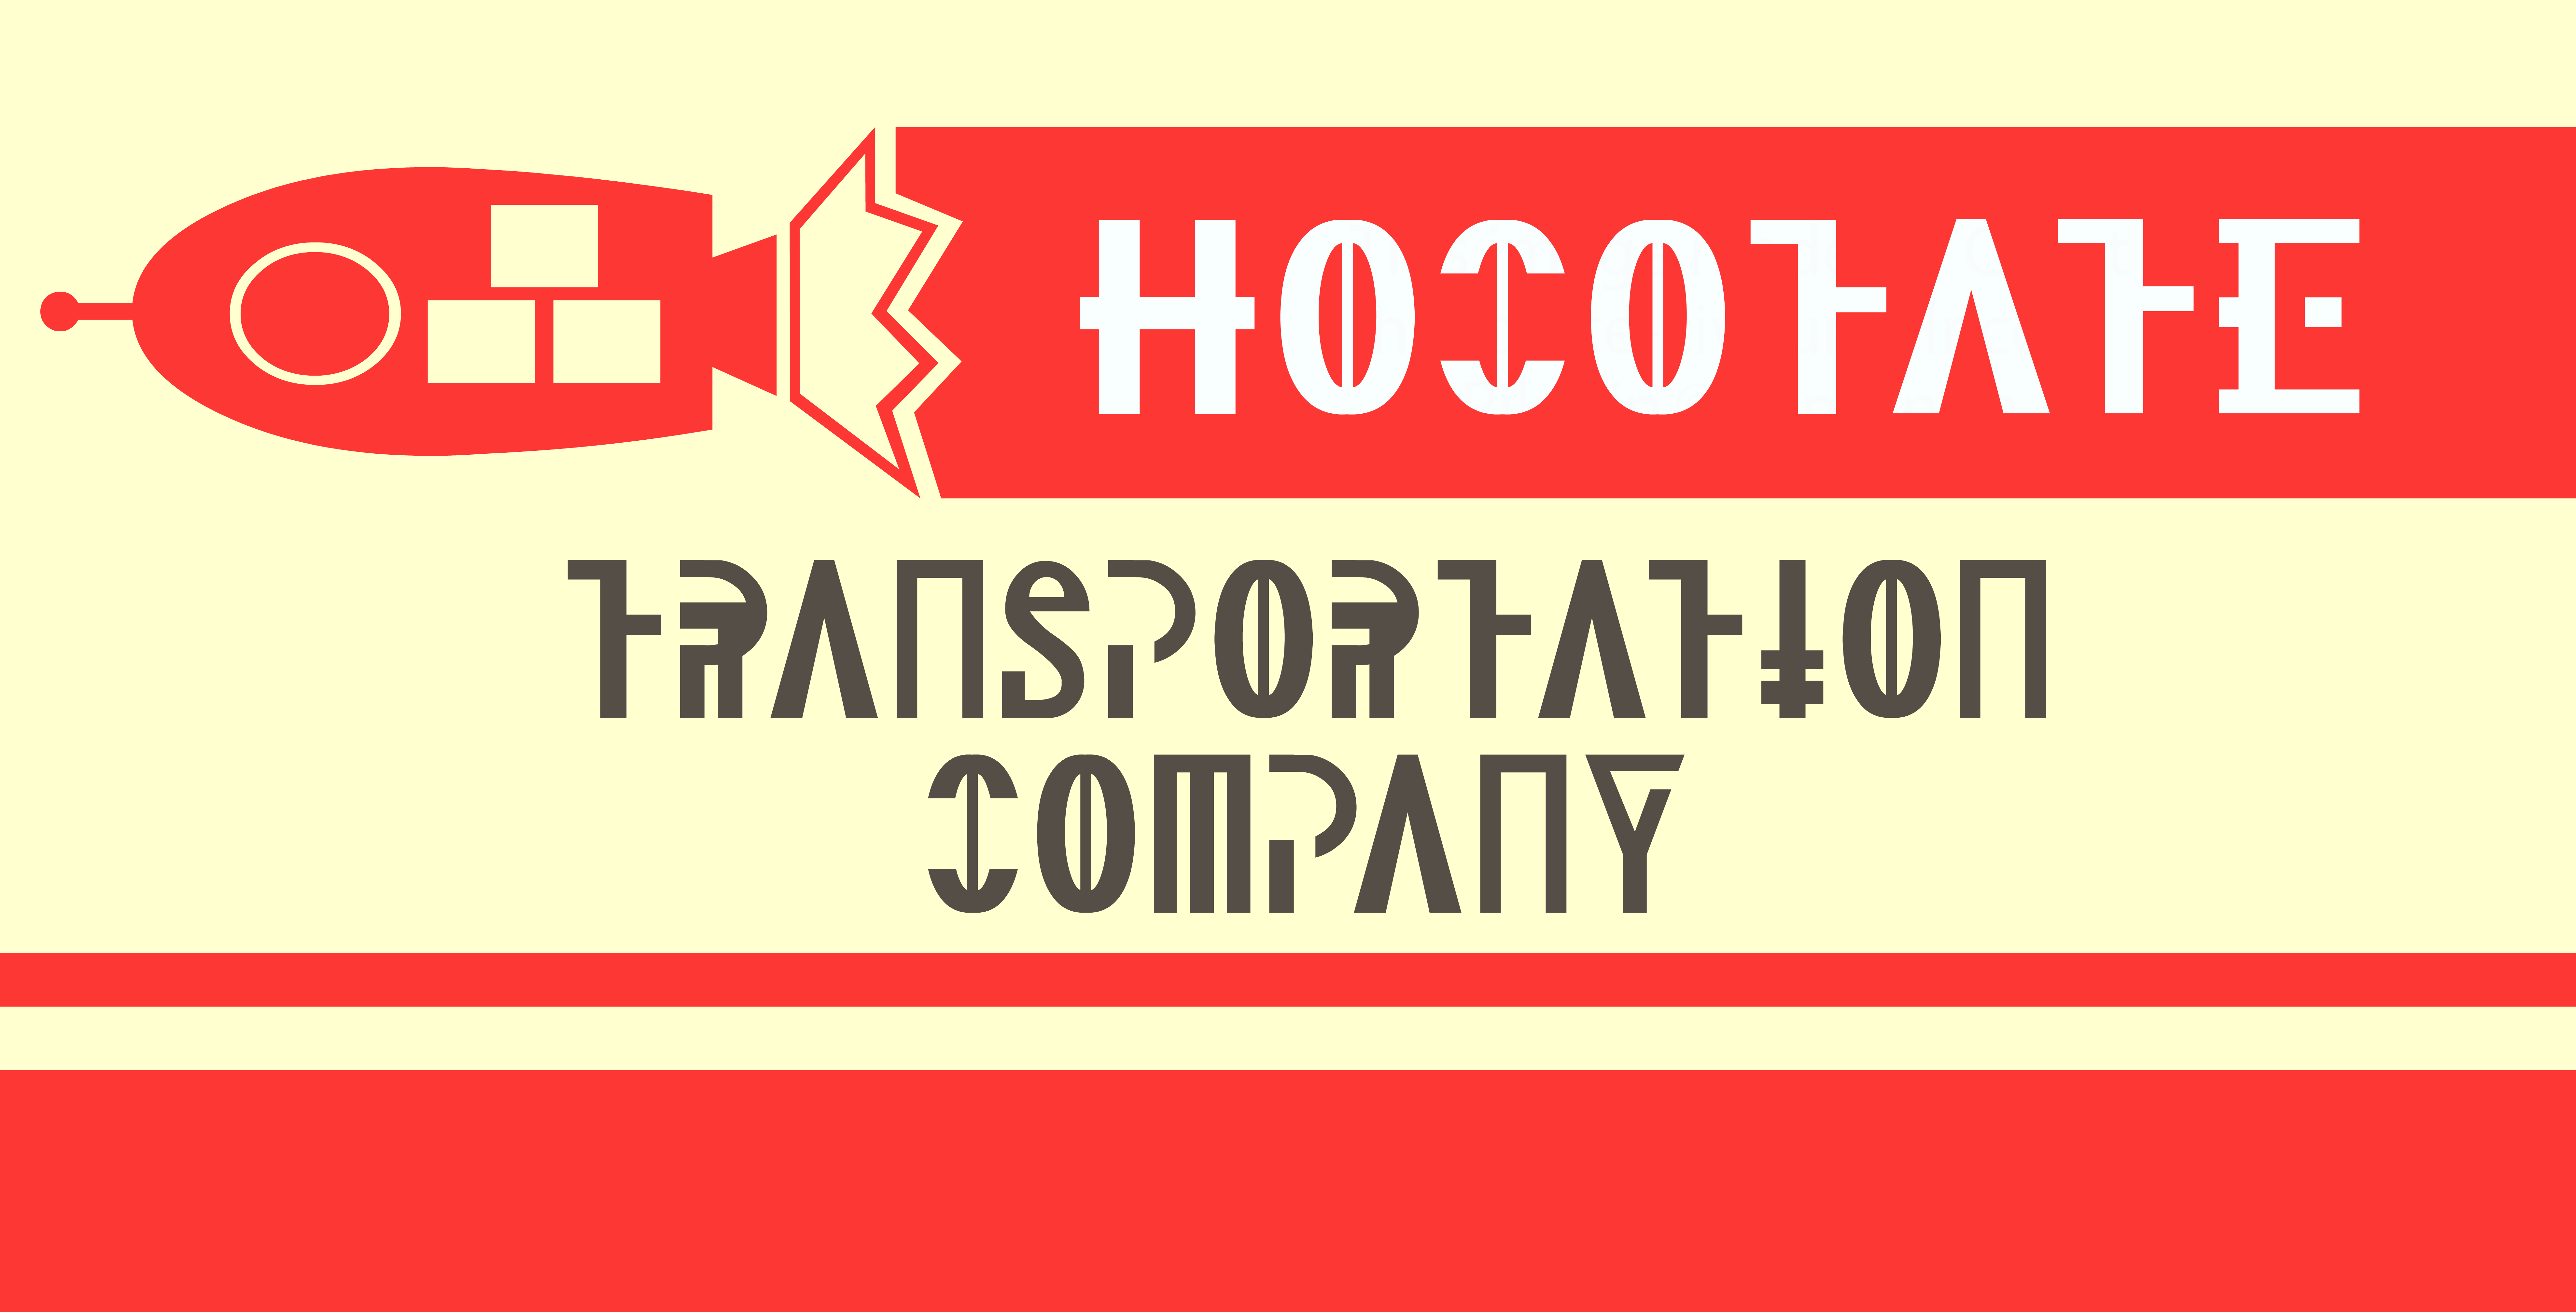 Hocotate Freight Sign by hocotate-civ